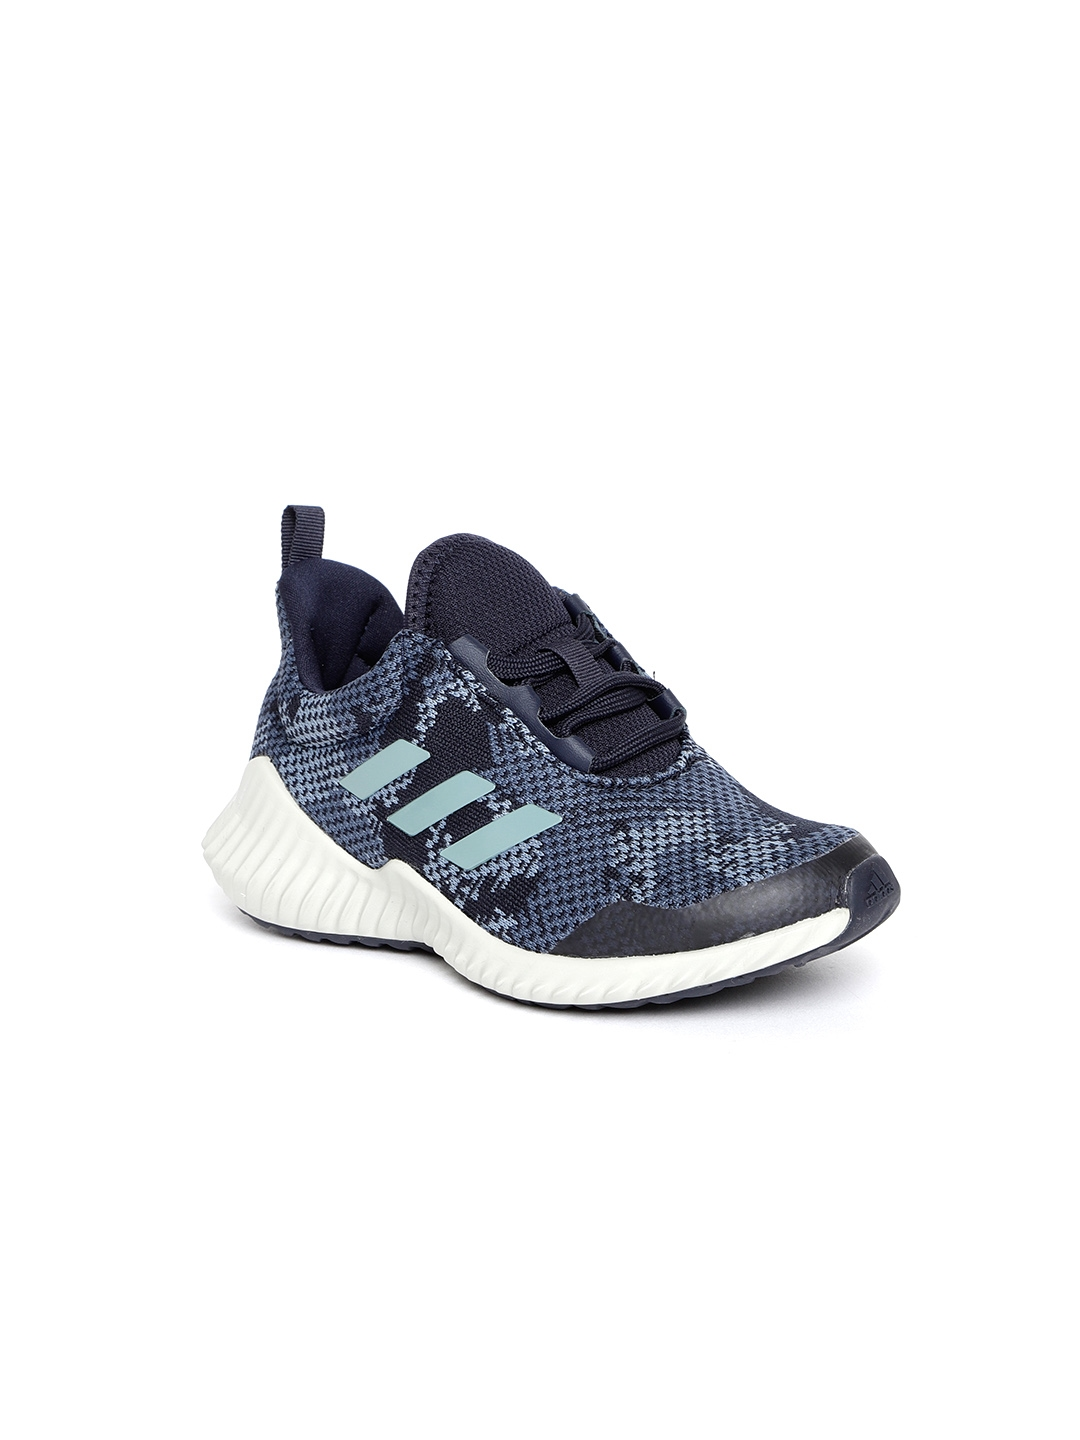 ee672e97ceef78 Buy Adidas Kids Blue FORTARUN K Patterned Running Shoes - Sports ...